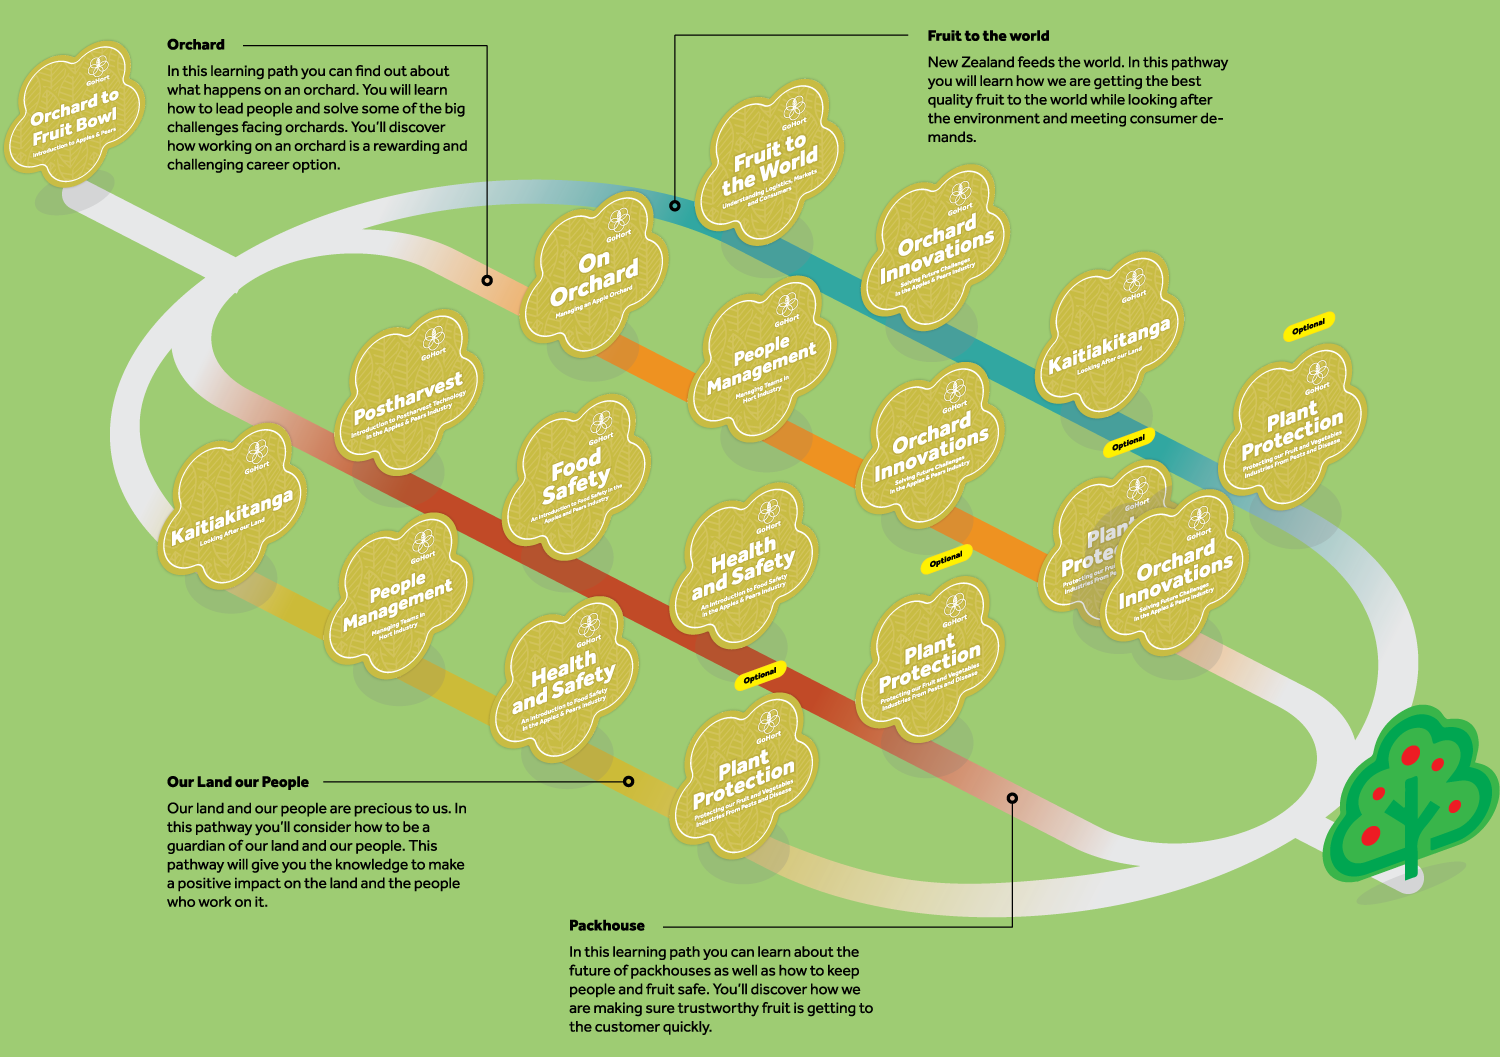 GoHort Learning Pathway map